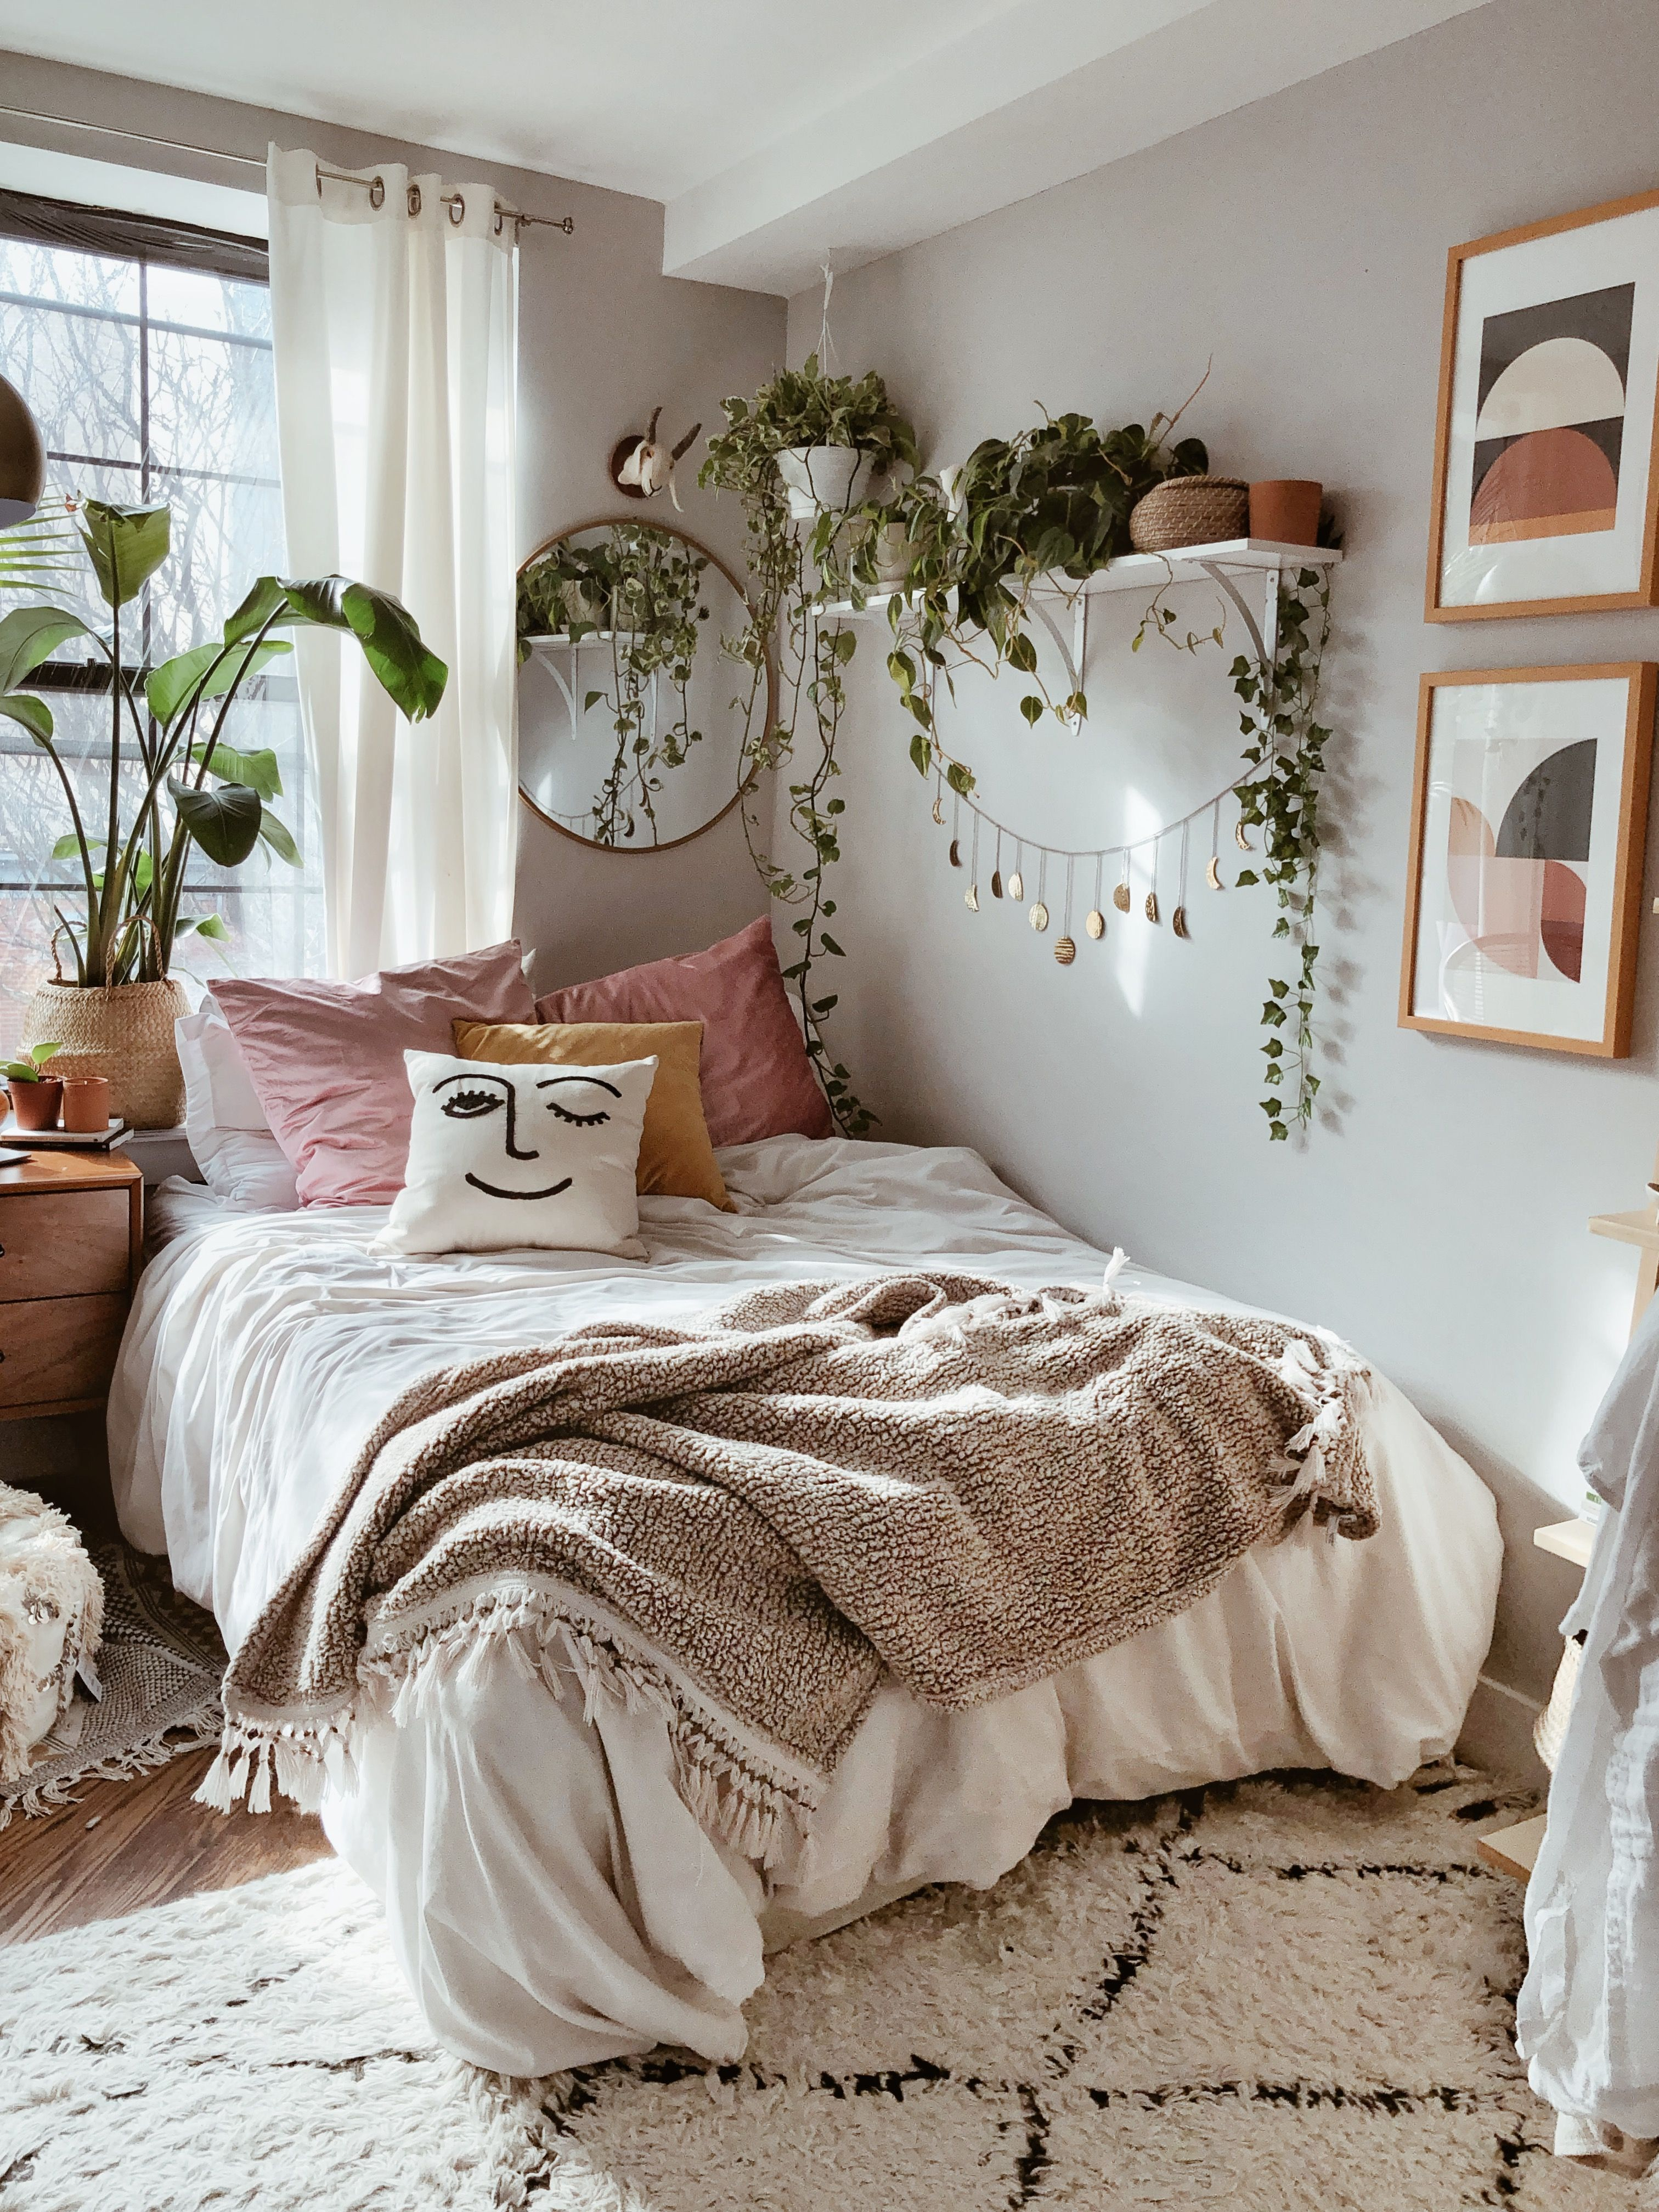 Boho Bedroom Decor | Aesthetic bedroom, Bedroom decor ...